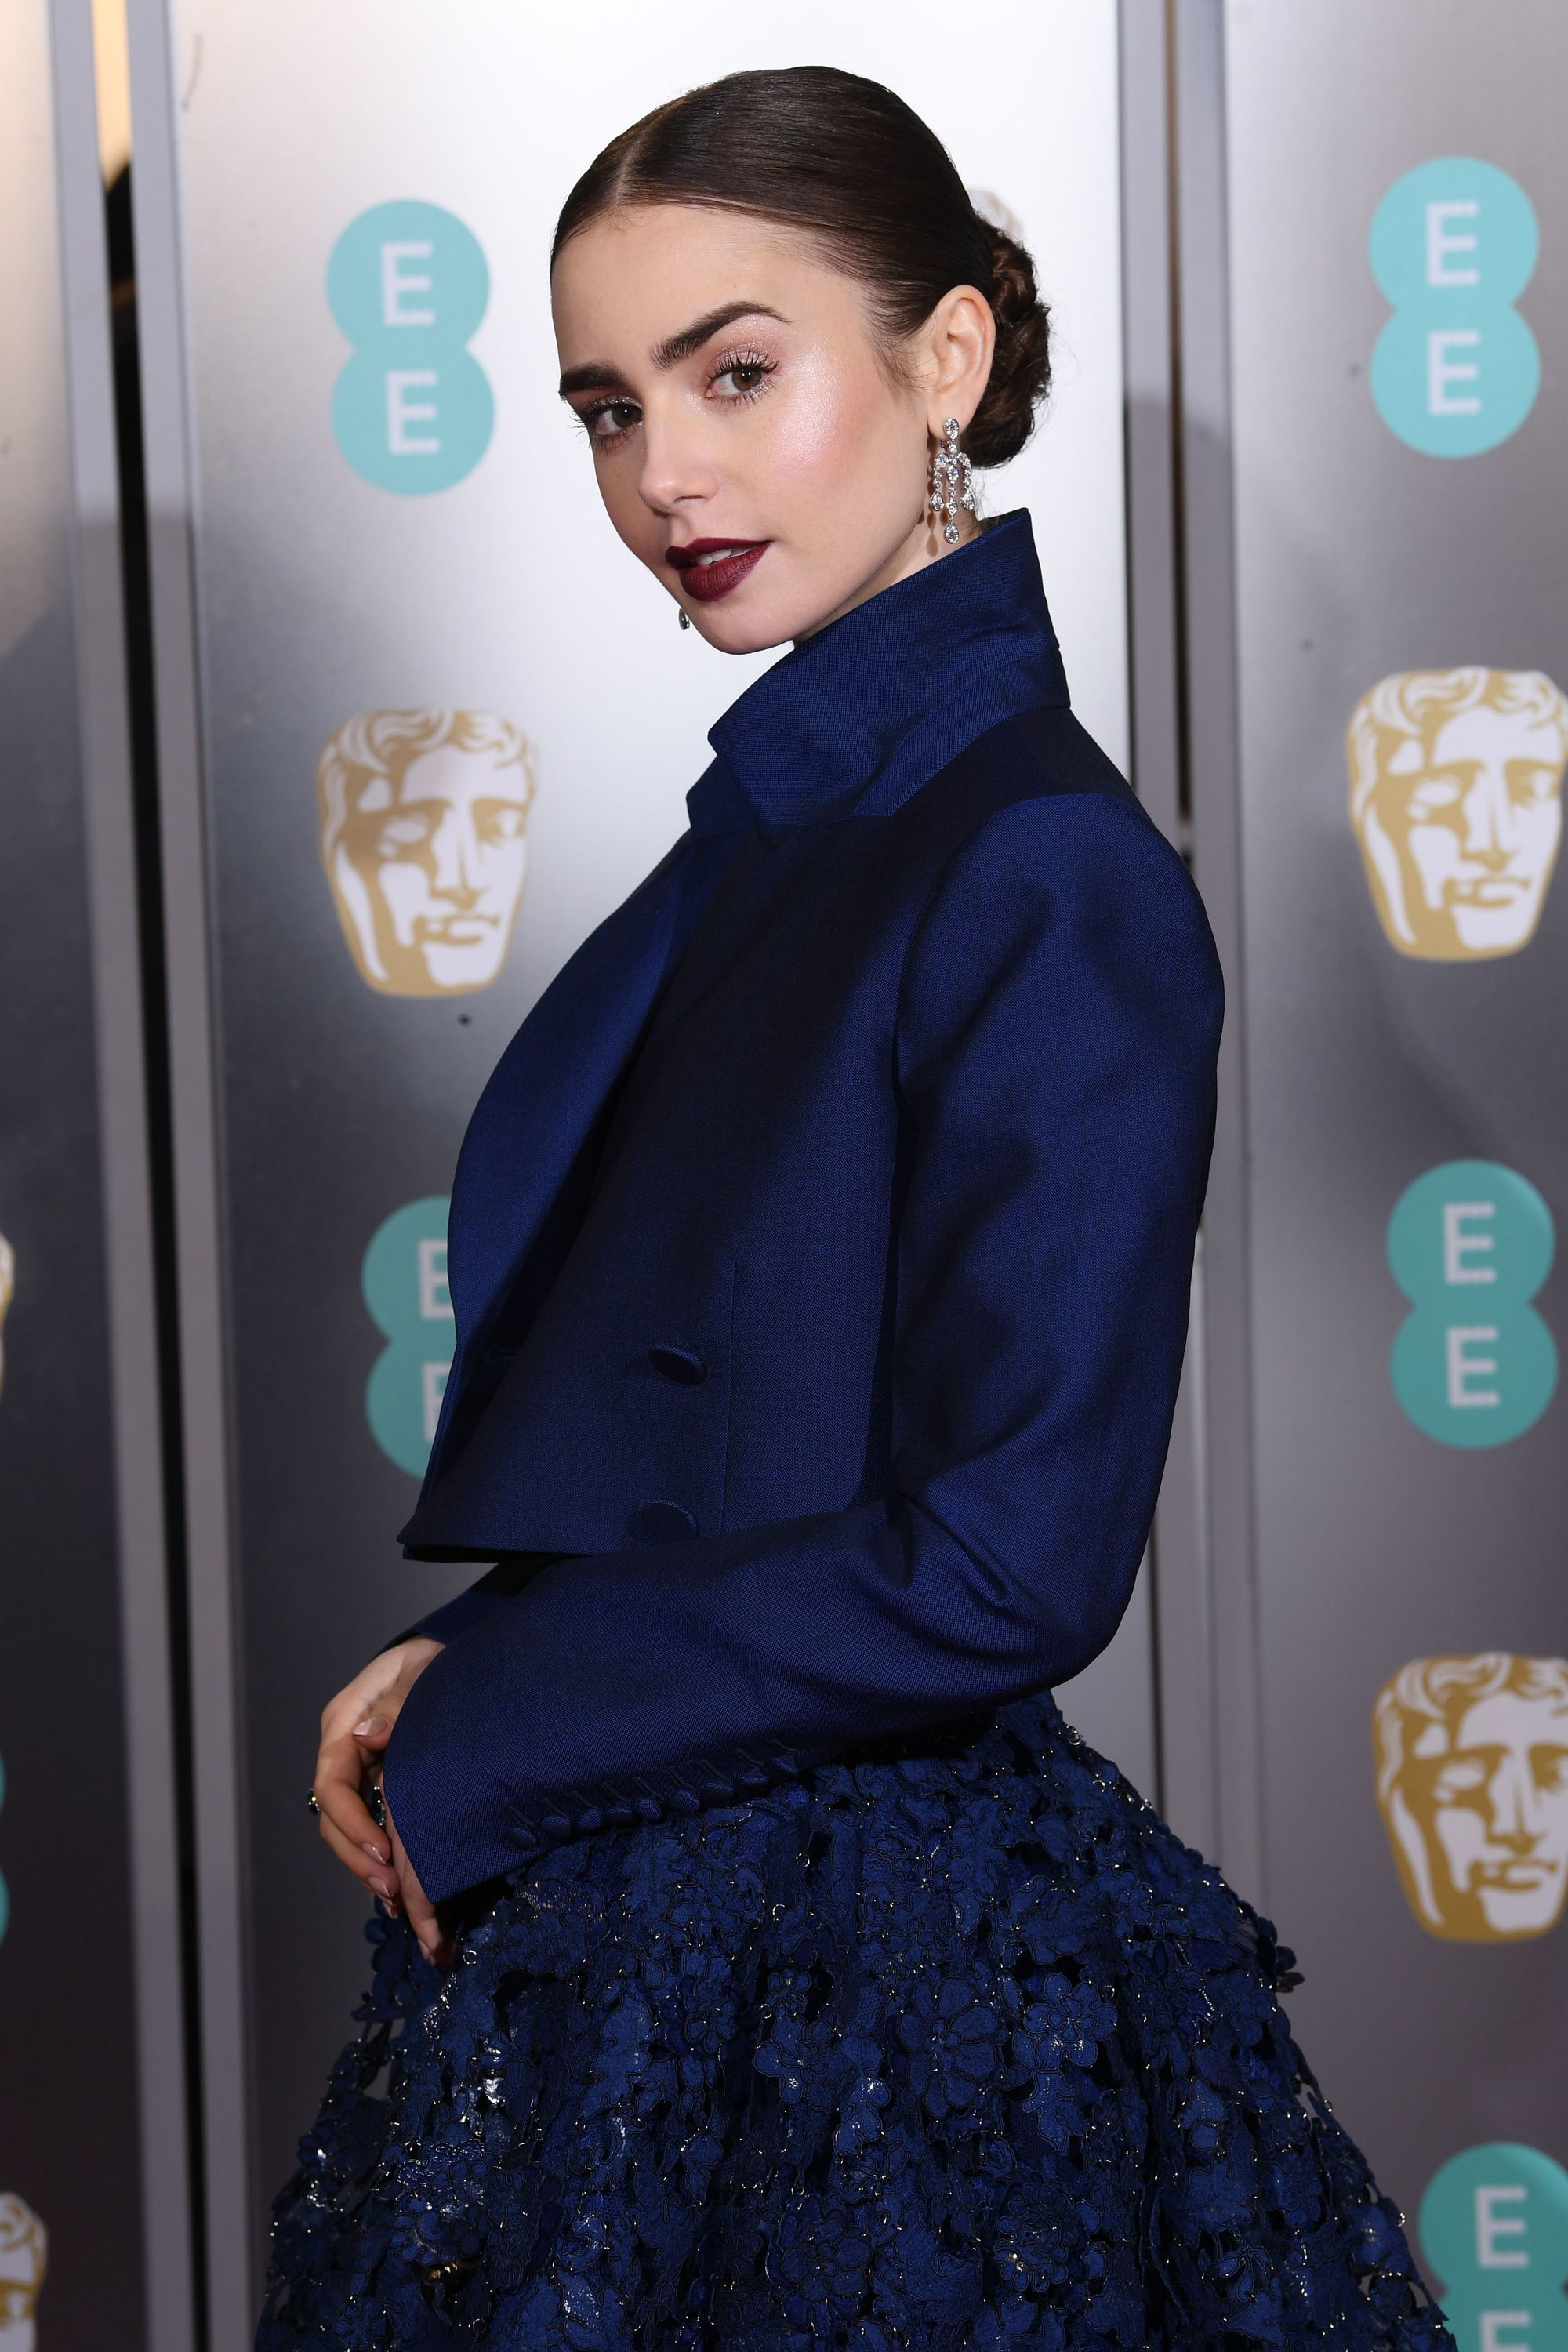 BAFTAs hairstyles: Lily Collins with dark brown hair in smooth low bun with dark lipstick on red carpet 2019.